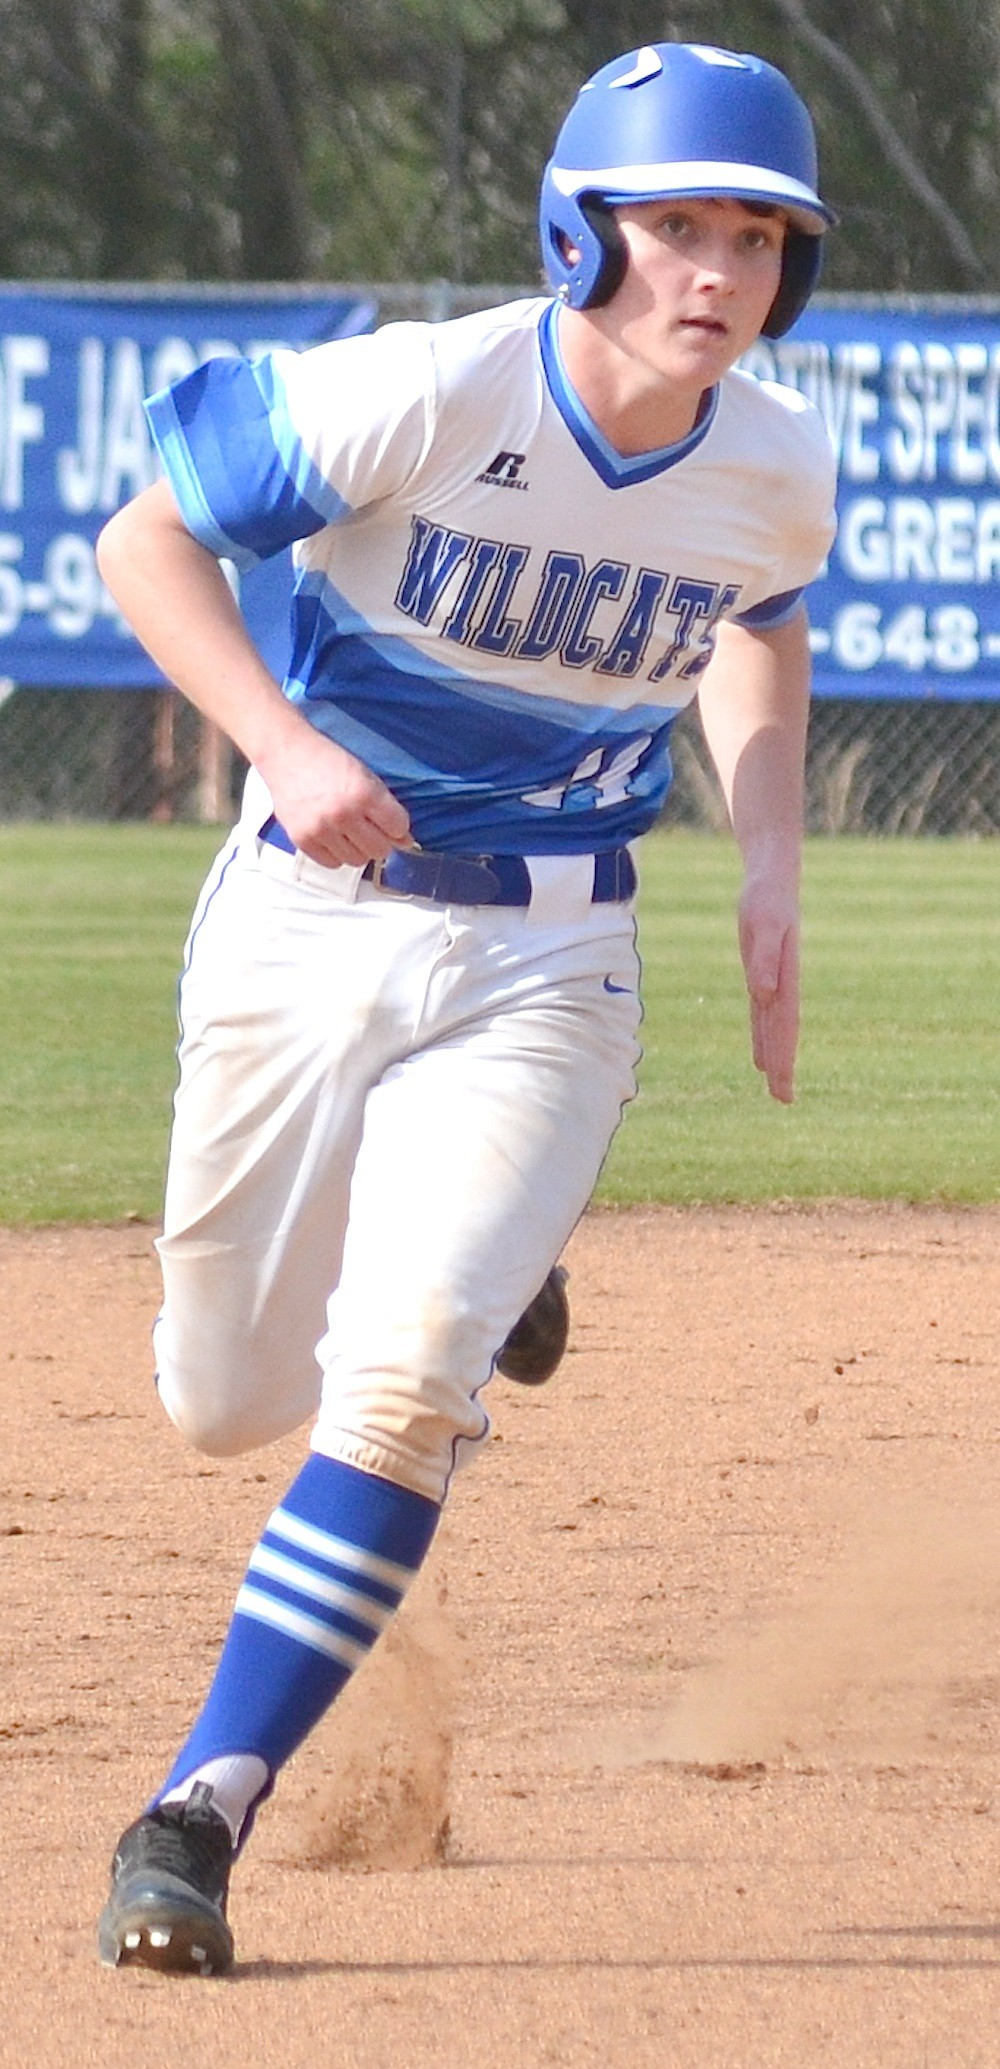 Oakman's Alex Ford runs the bases during a win over Cordova early in the season. The Wildcats won their area opener on Tuesday, beating Vinemont 7-1.